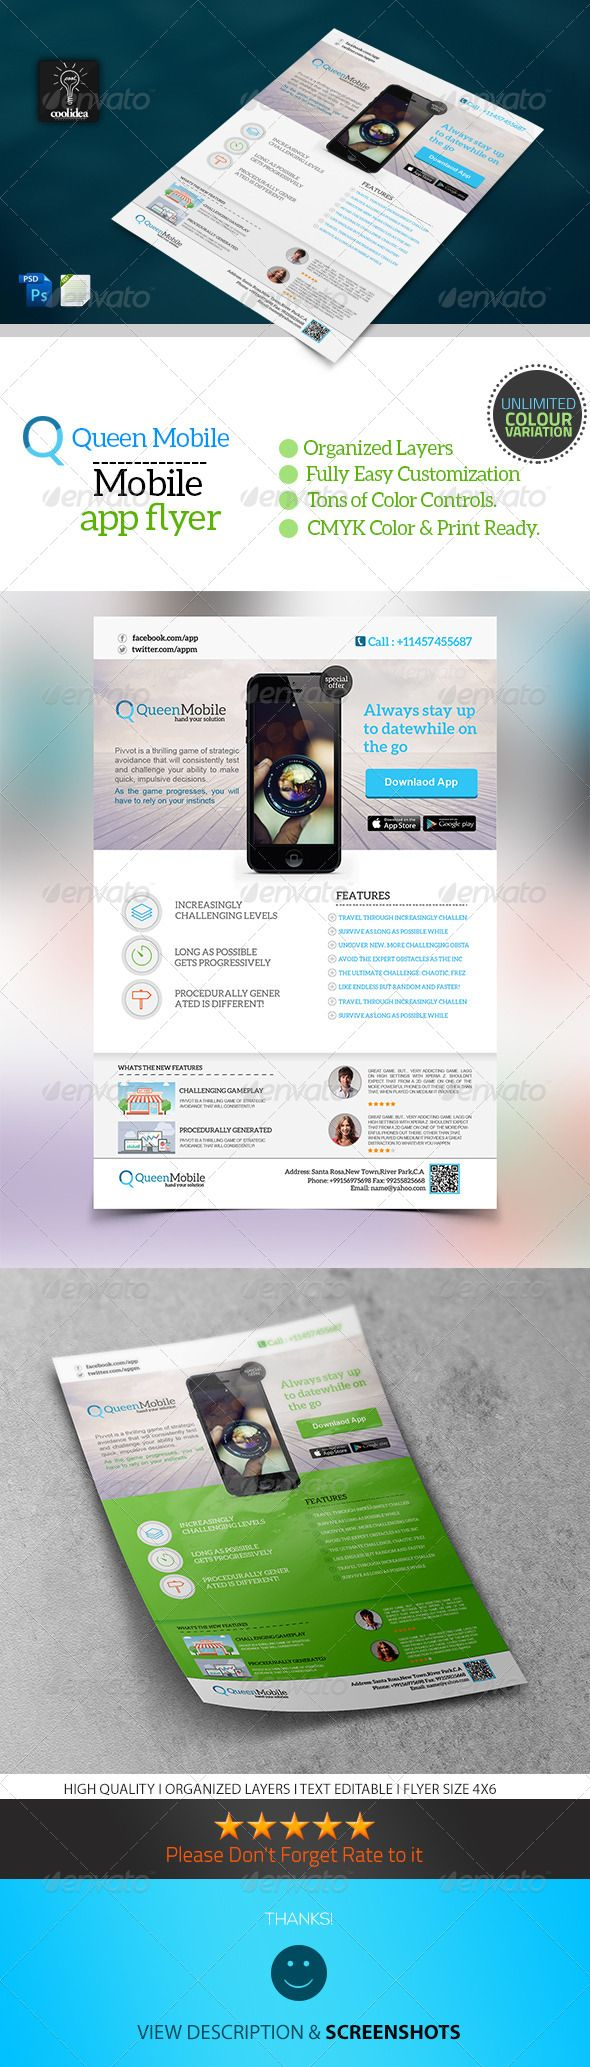 how to make flyers for business opucuk kiessling co